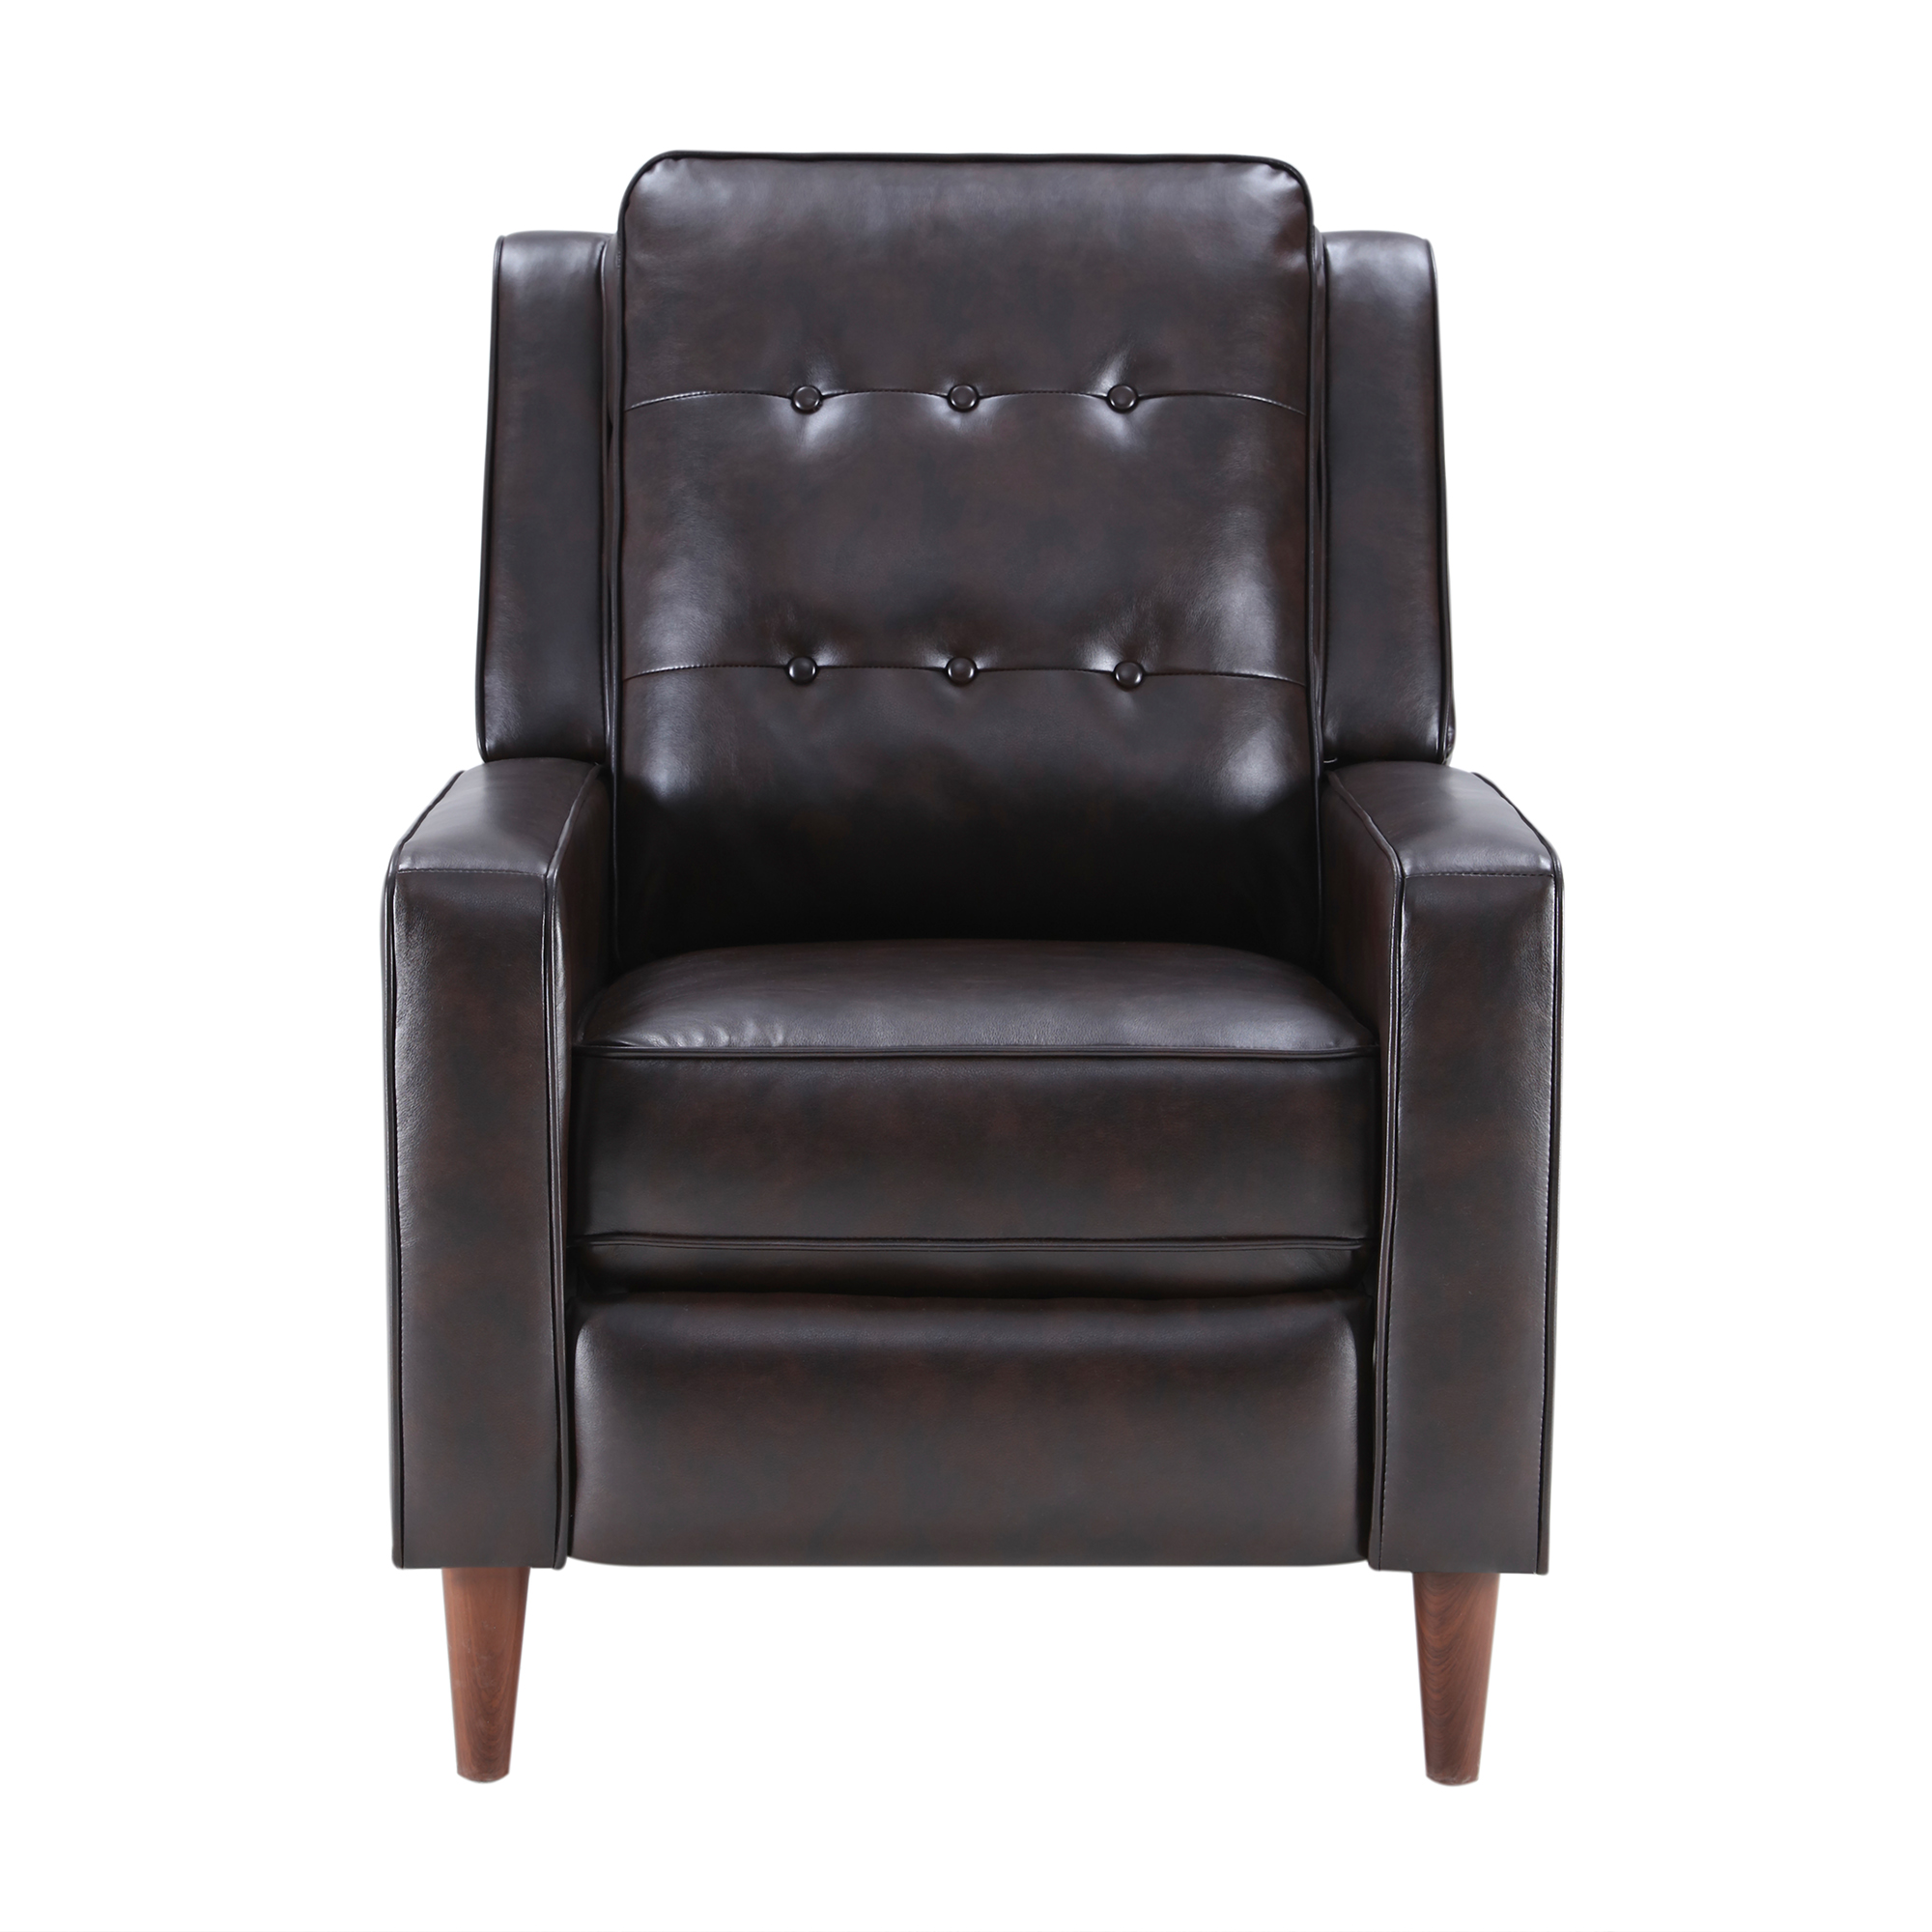 Push Back Recliner Manual Armchair With Medieval Style Accent Chair For Living Room, Bedroom, Home Office